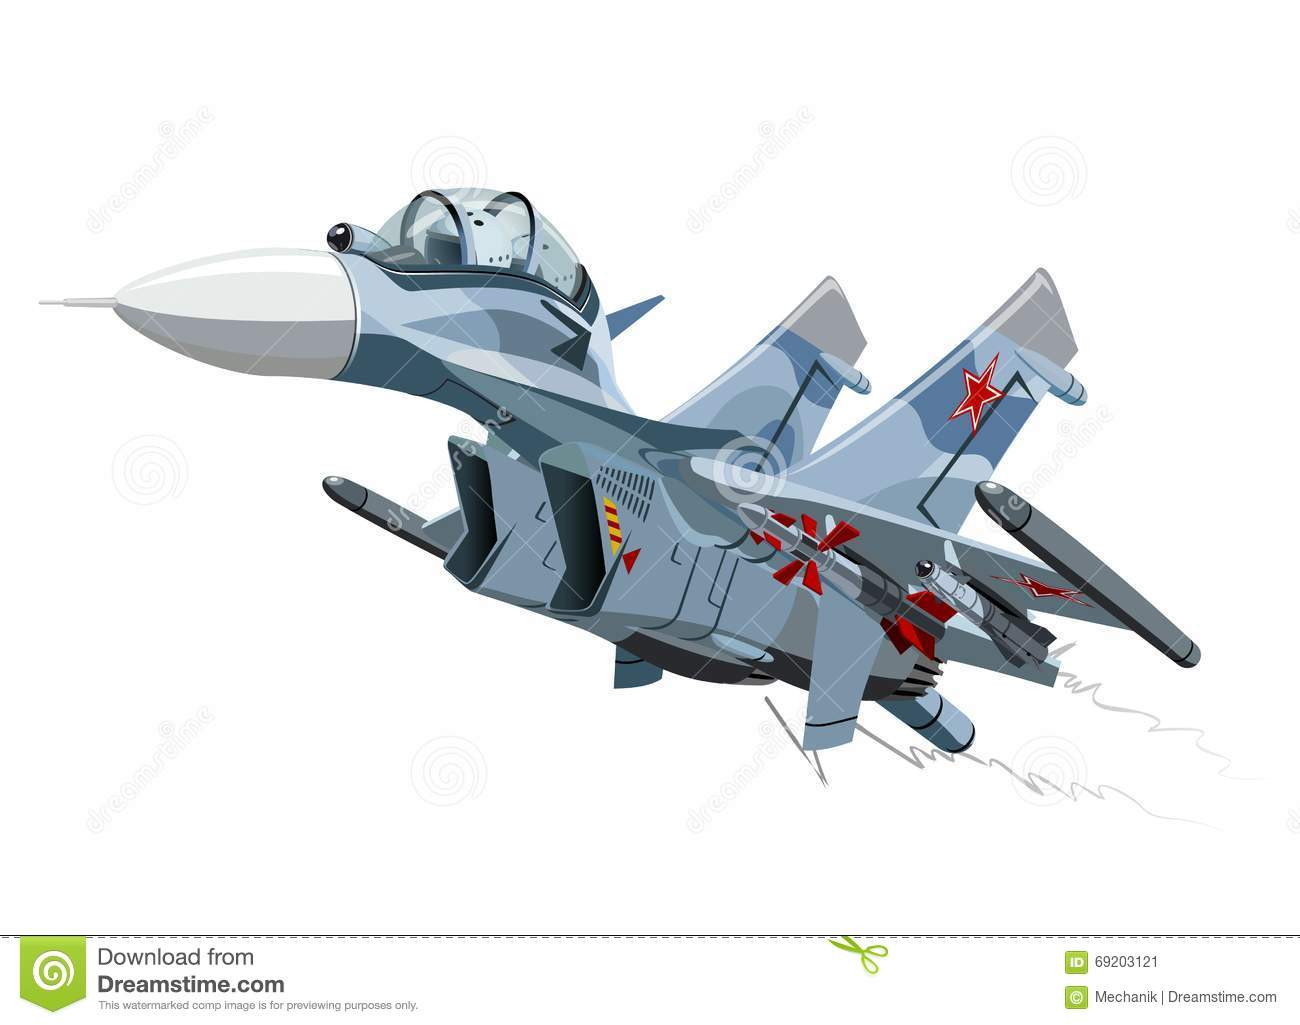 easy drawing of plane with Stock Illustration Cartoon Military Airplane Vector Fighter Plane Available Eps Vector Format Separated Groups Layers Easy Edit Image69203121 on Bricolage Rouleau Papier Toilette Avion additionally Octahedron additionally Standard Fasteners Bolts And Nuts besides F 22 US Jet Pilot 357828729 additionally How To Draw Scenery Of Autumn Season Step By Step Very Easy.